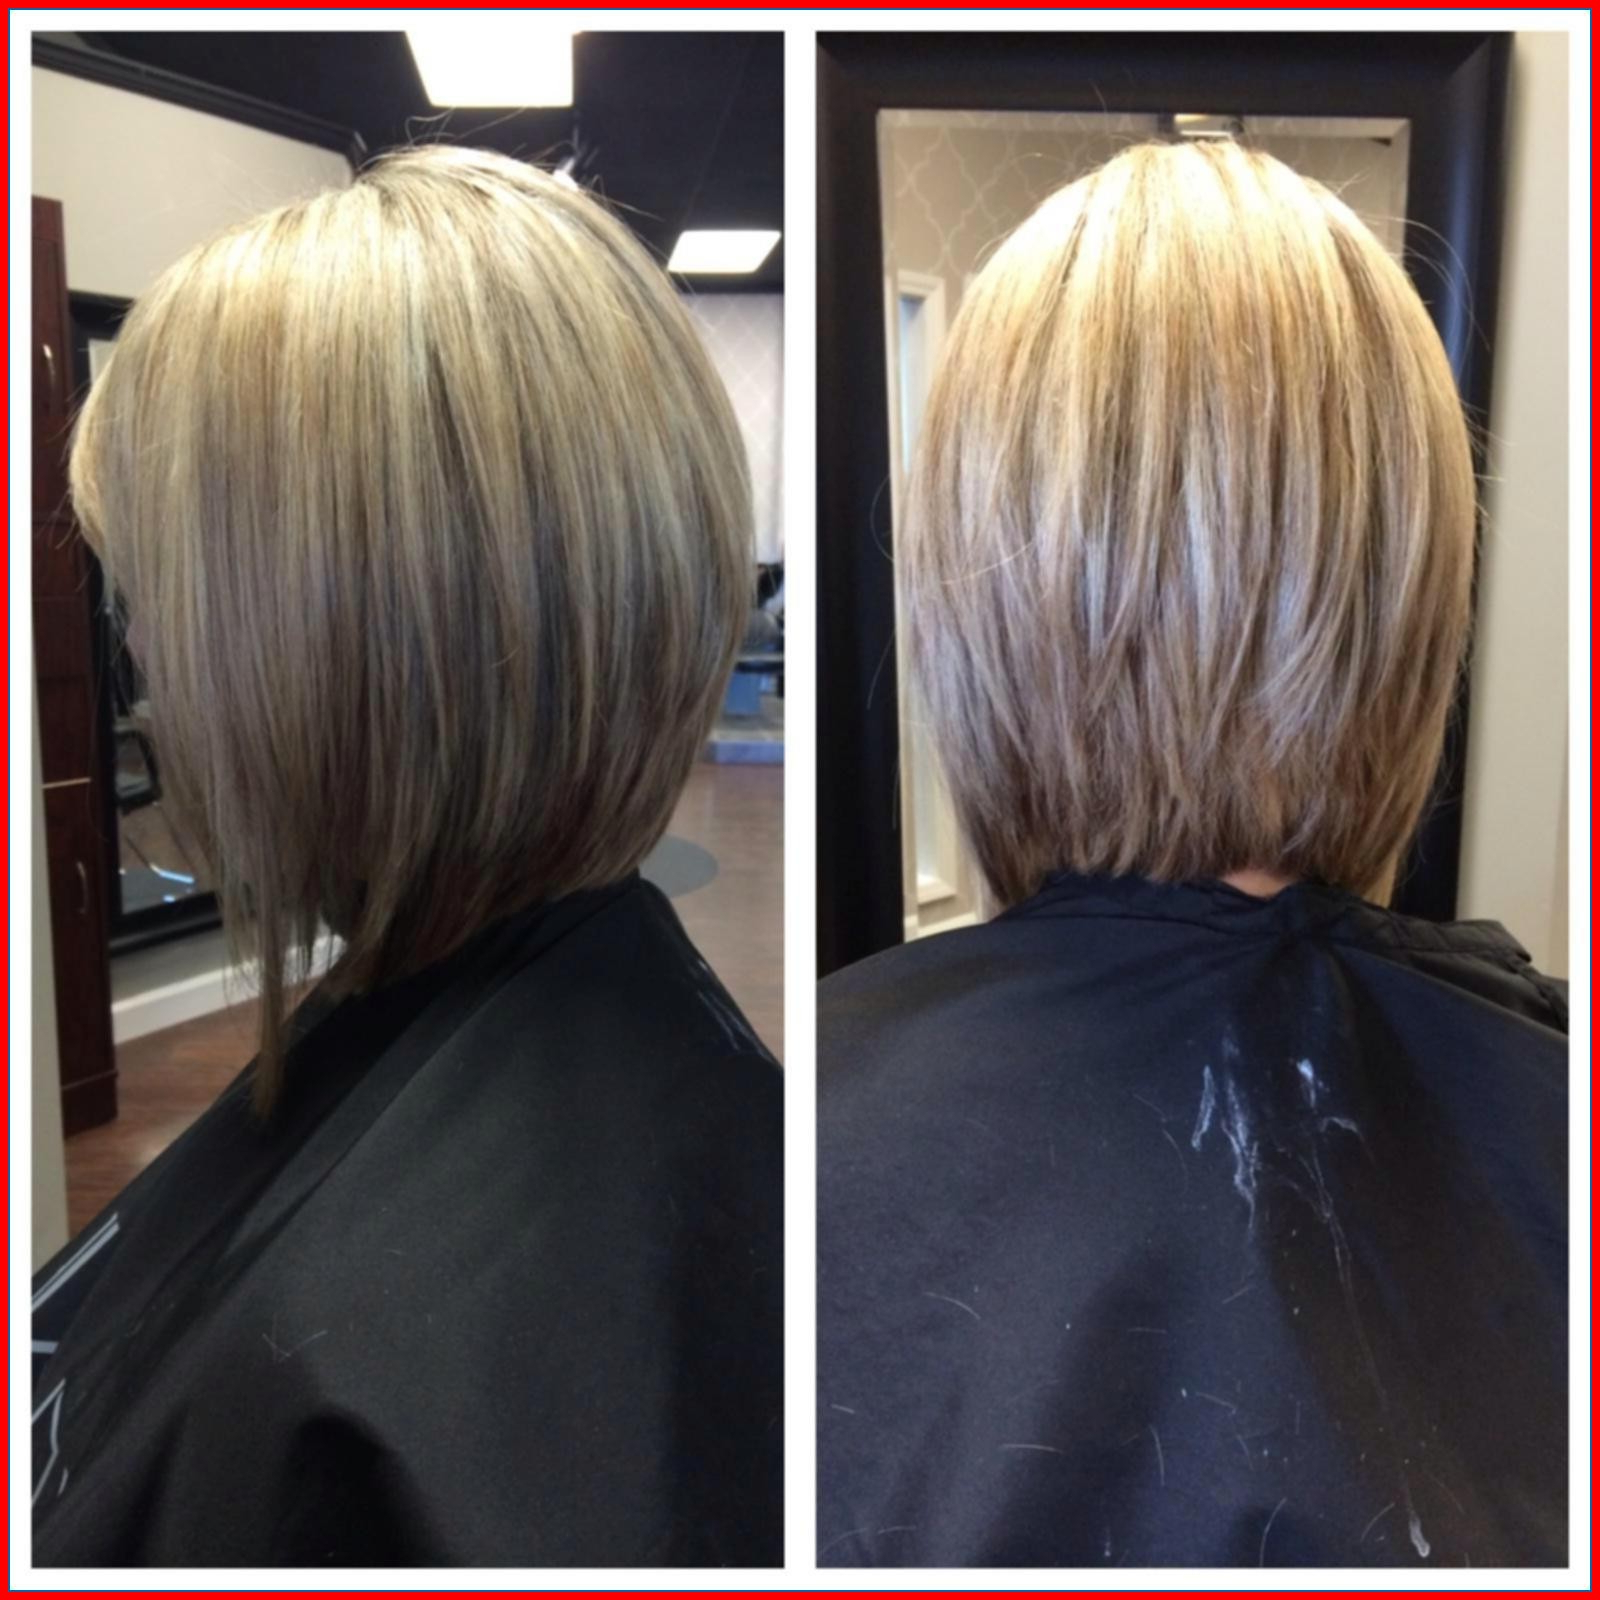 2017 Medium Angled Purple Bob Hairstyles With Angled Bob Haircuts 161560 Short Angled Bob Haircut Back View Angled (View 5 of 20)